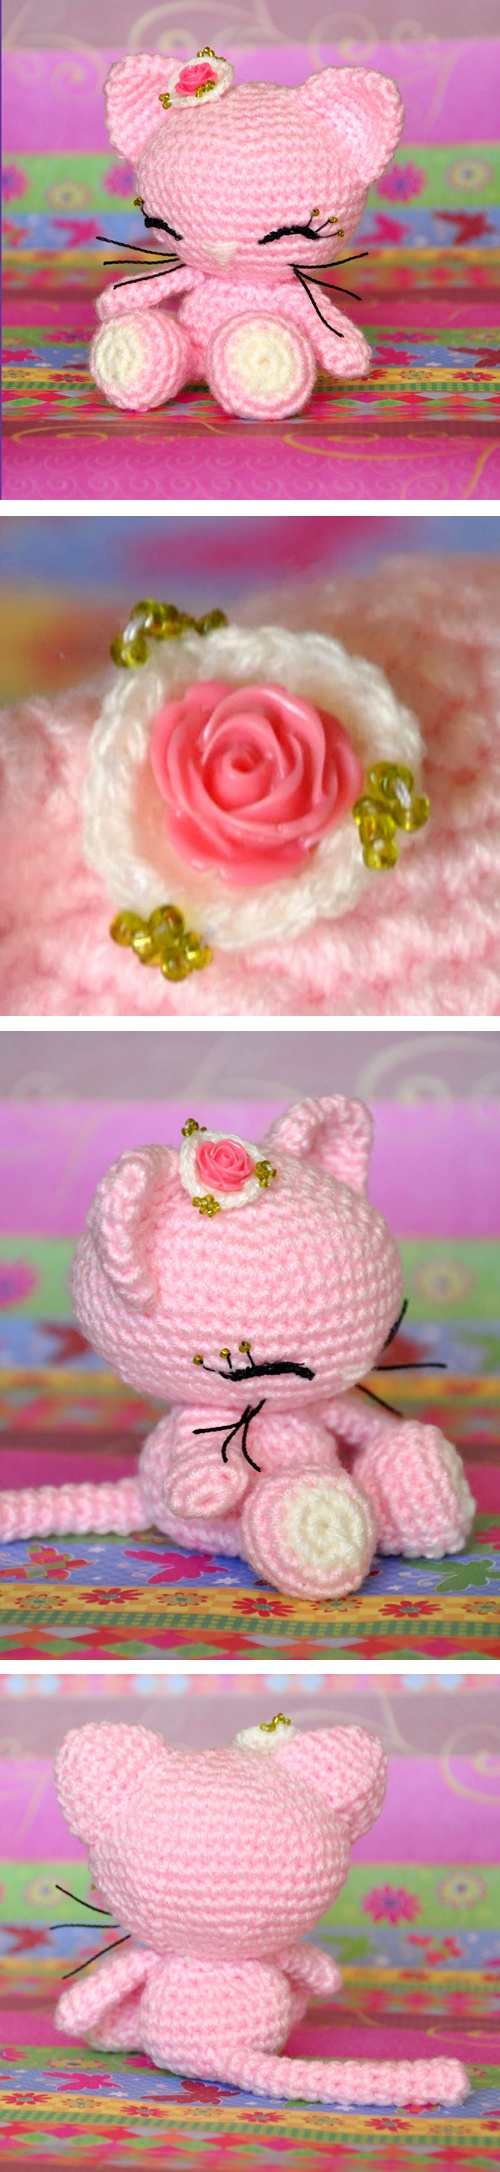 Chica outlet - gatito - free pattern...this is yet another cutie I should make for you Vylette <3